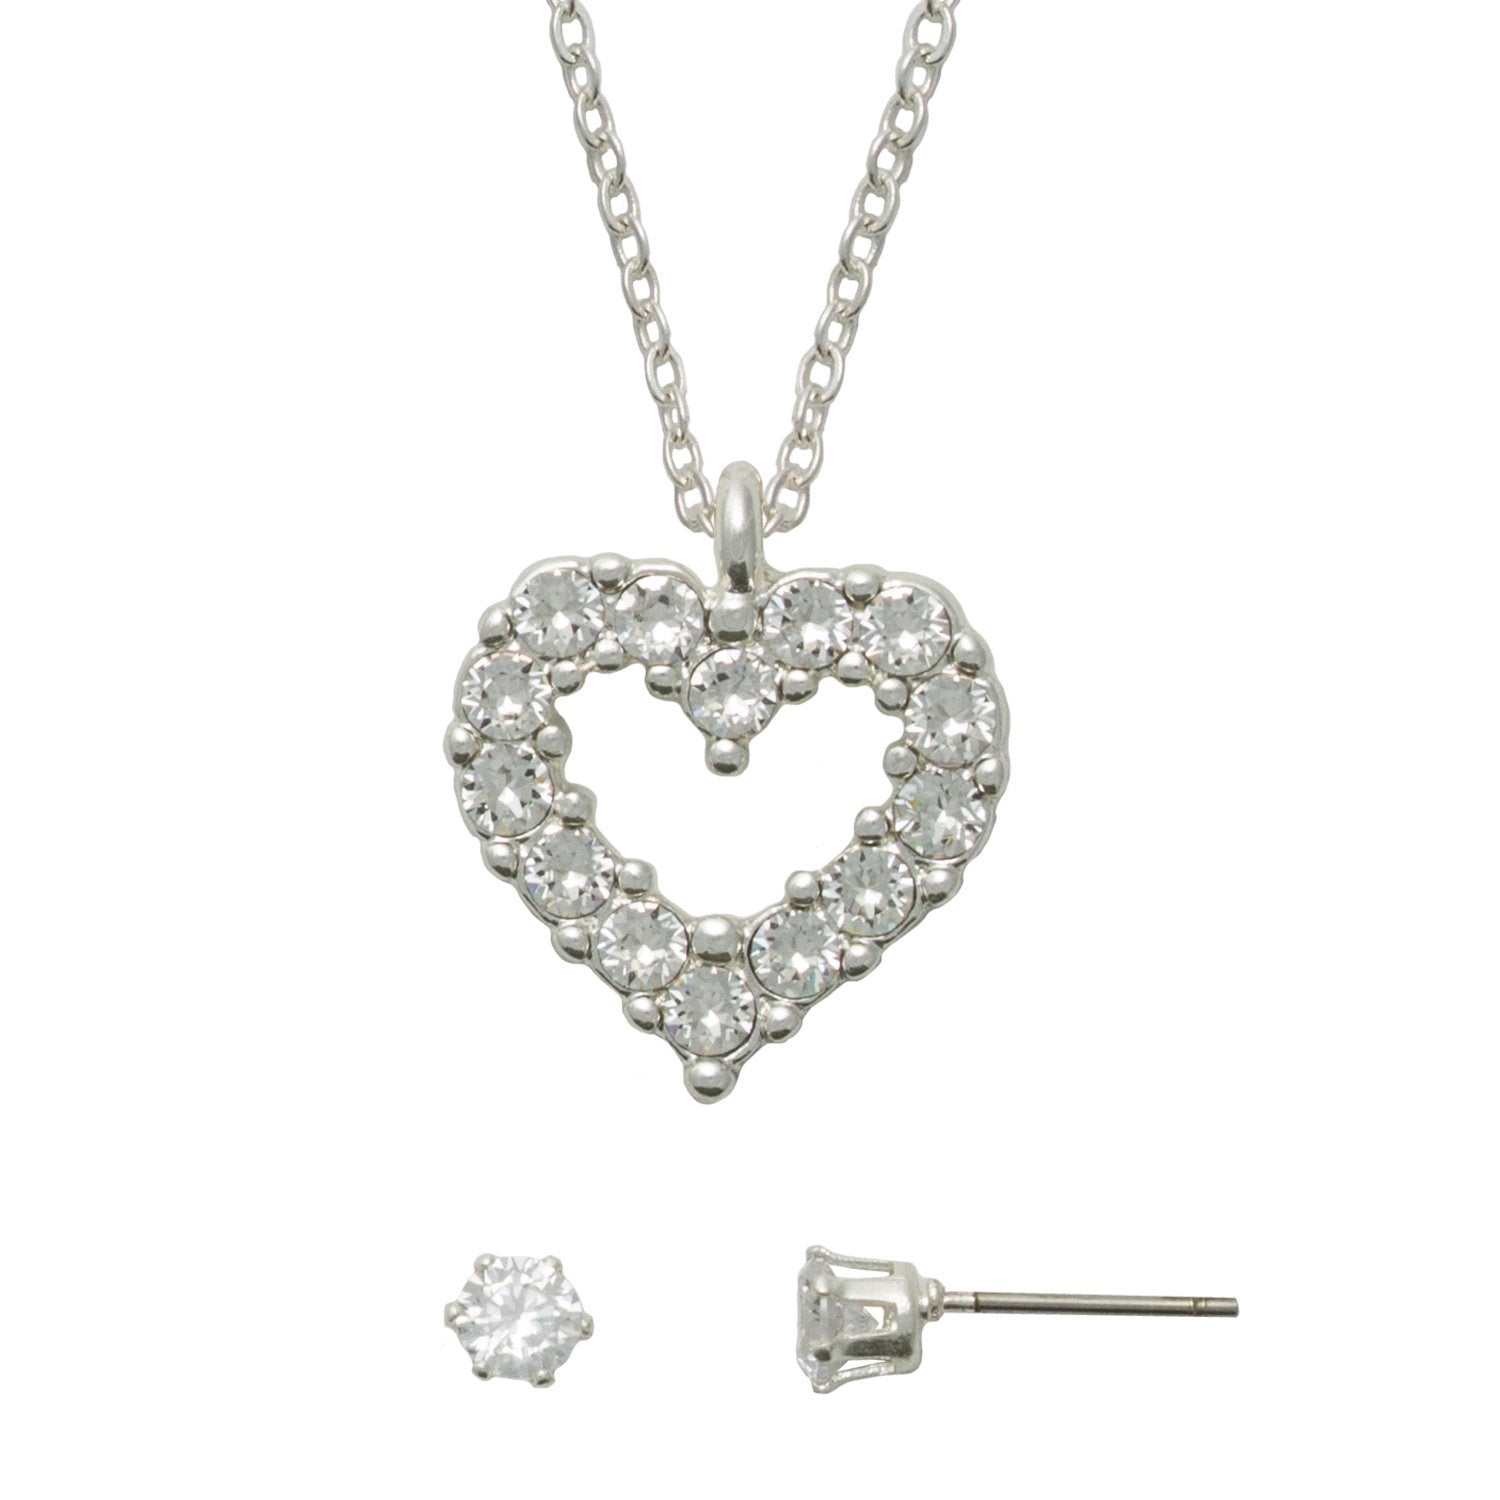 7b0110e7f Clear Swarovski Heart Necklace and Earring Set - Essential Designs ...